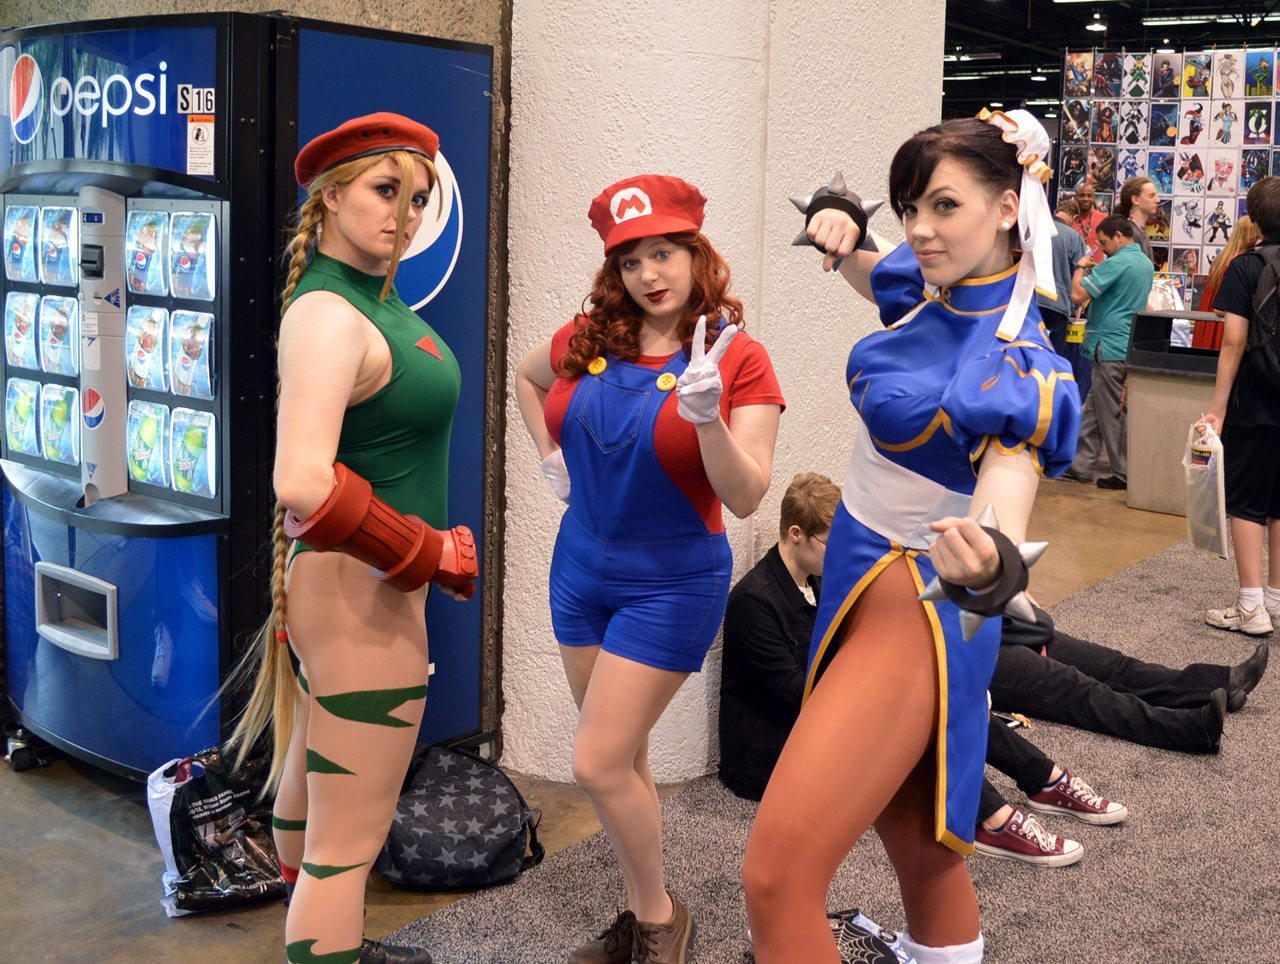 Nintendo Heads to WonderCon with Games, Fan Tournaments and Giveaways